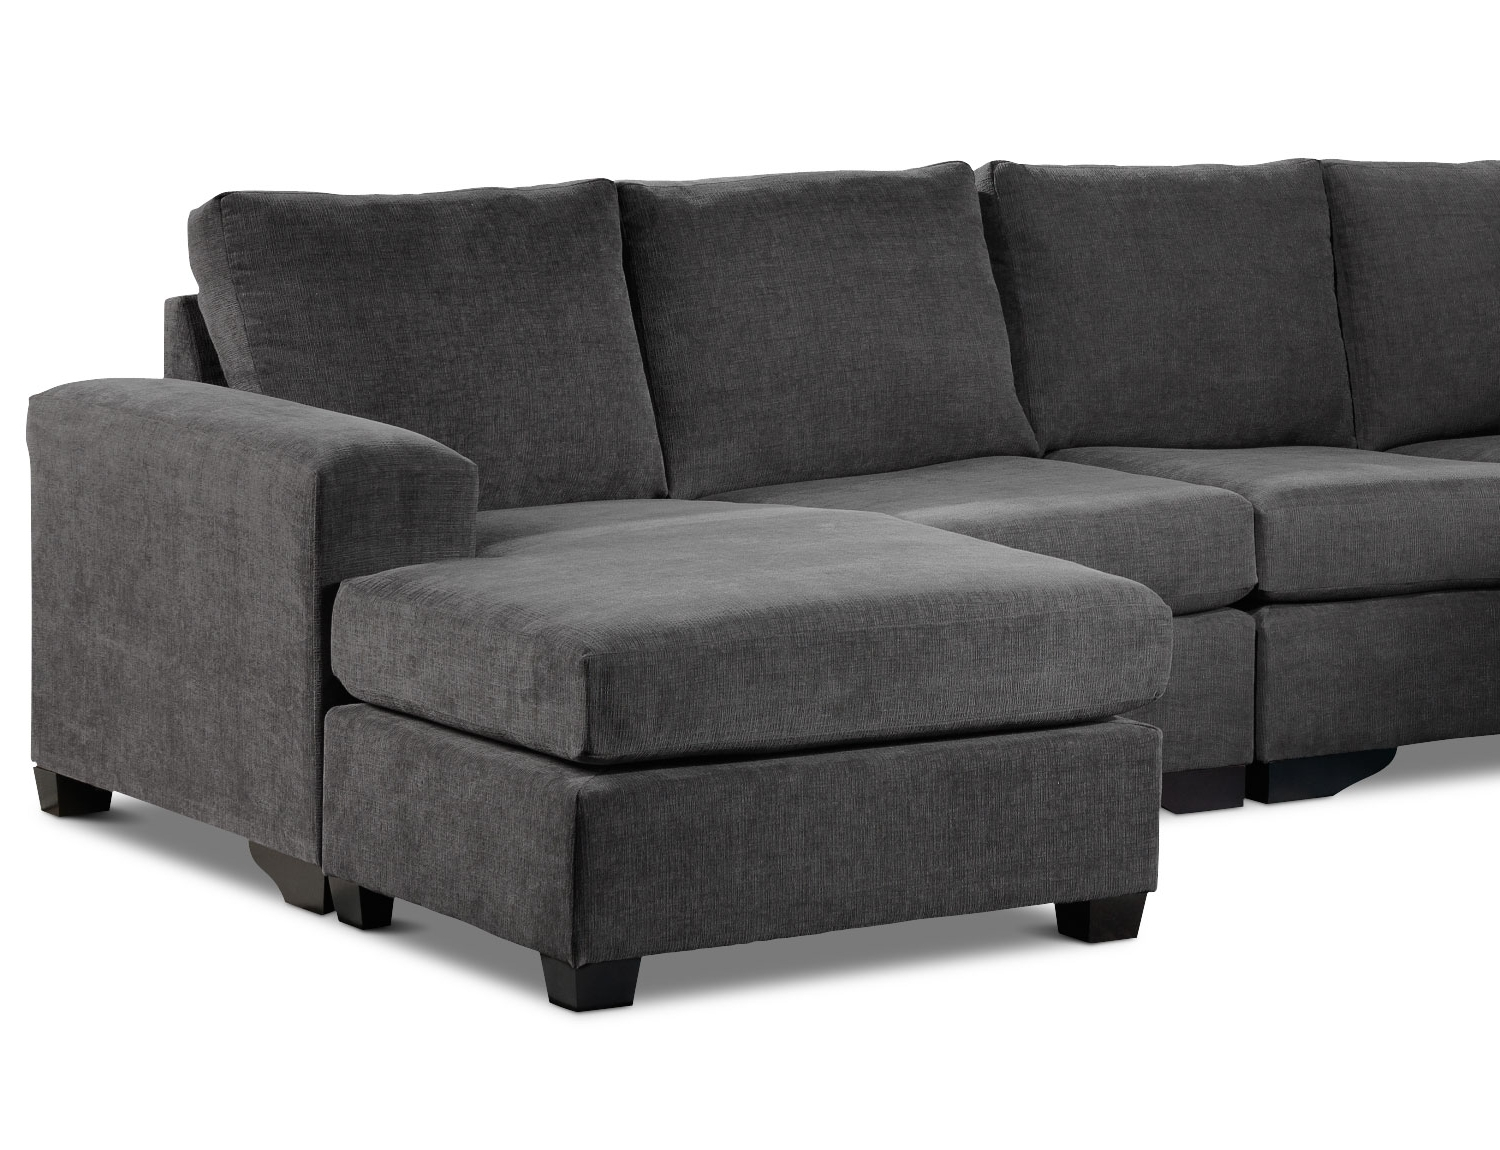 Sectional Sofas At Edmonton In Latest Danielle 3 Piece Sectional With Right Facing Corner Wedge – Grey (View 13 of 20)